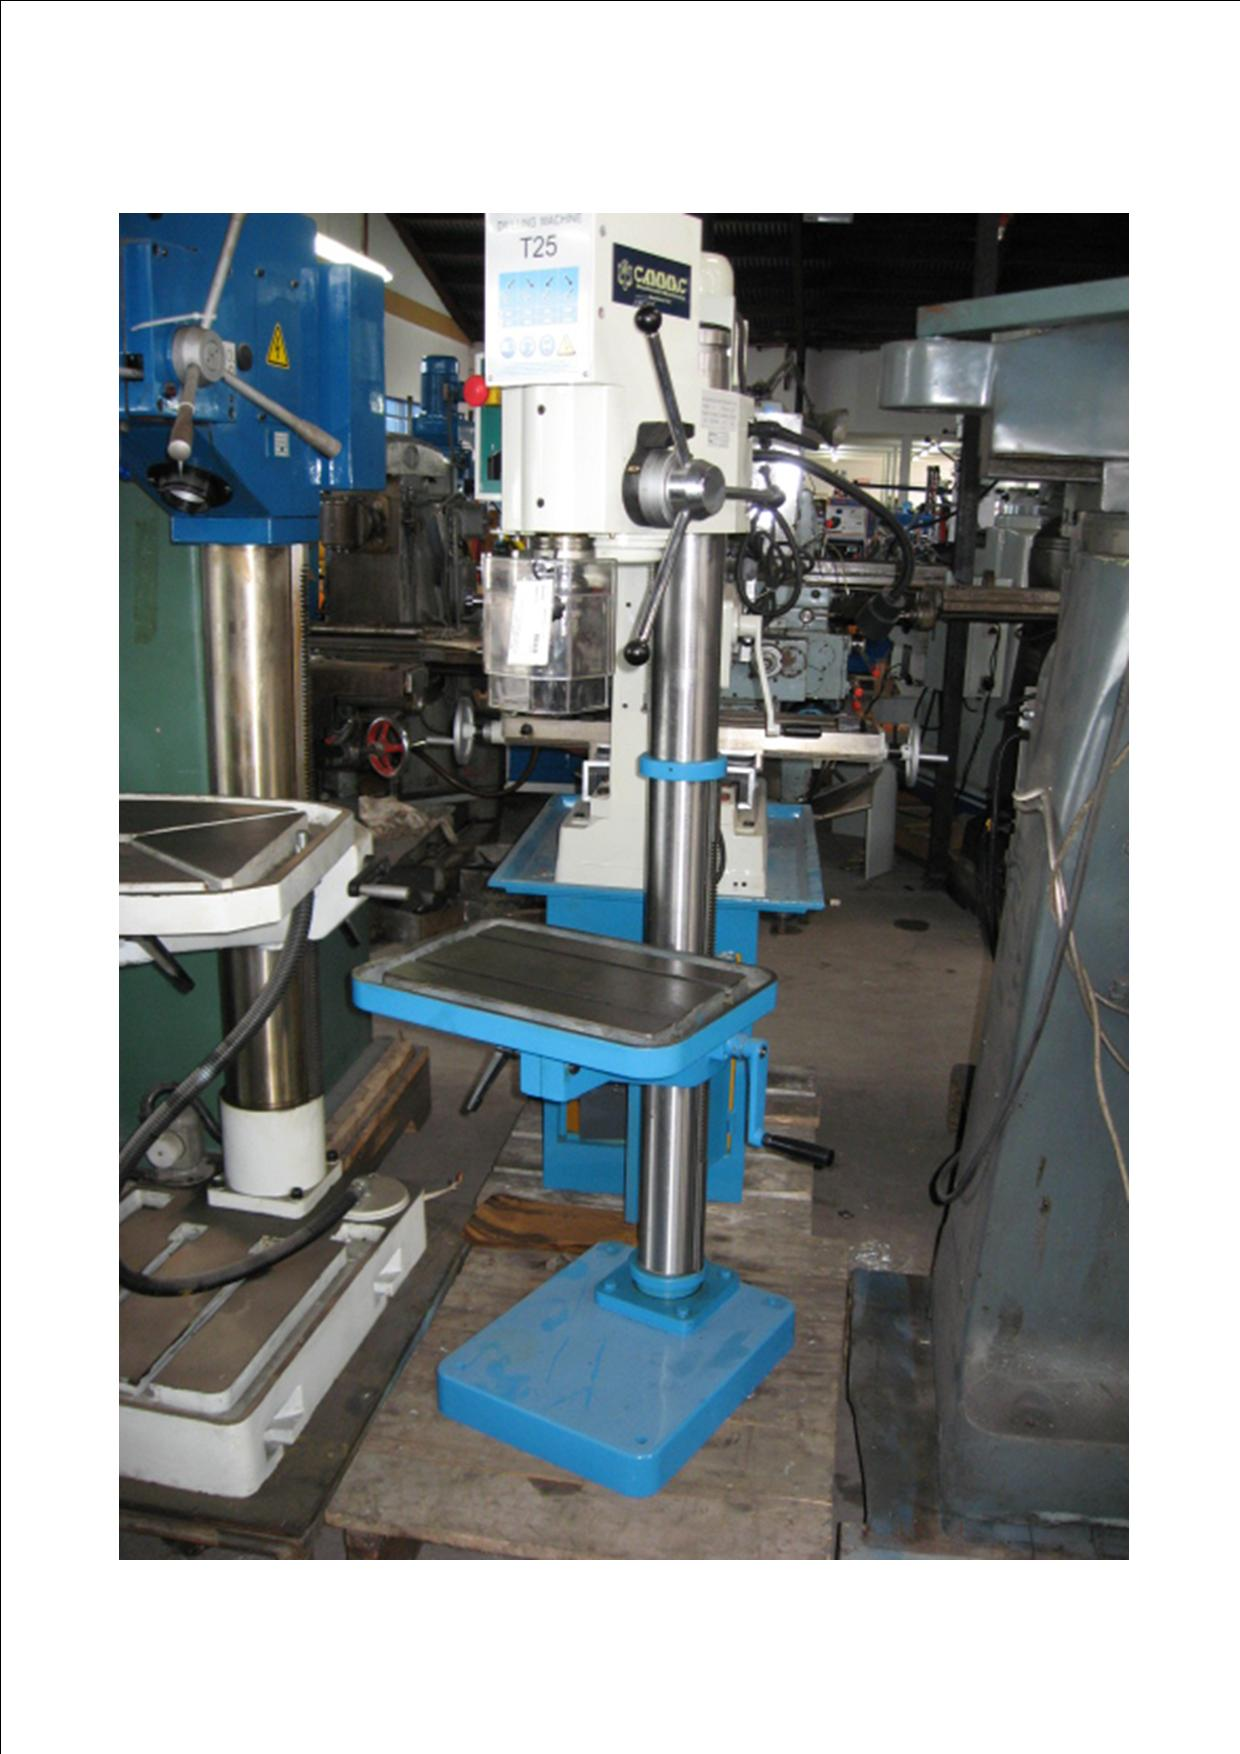 T25 geared head 3 phase drill press, MT3